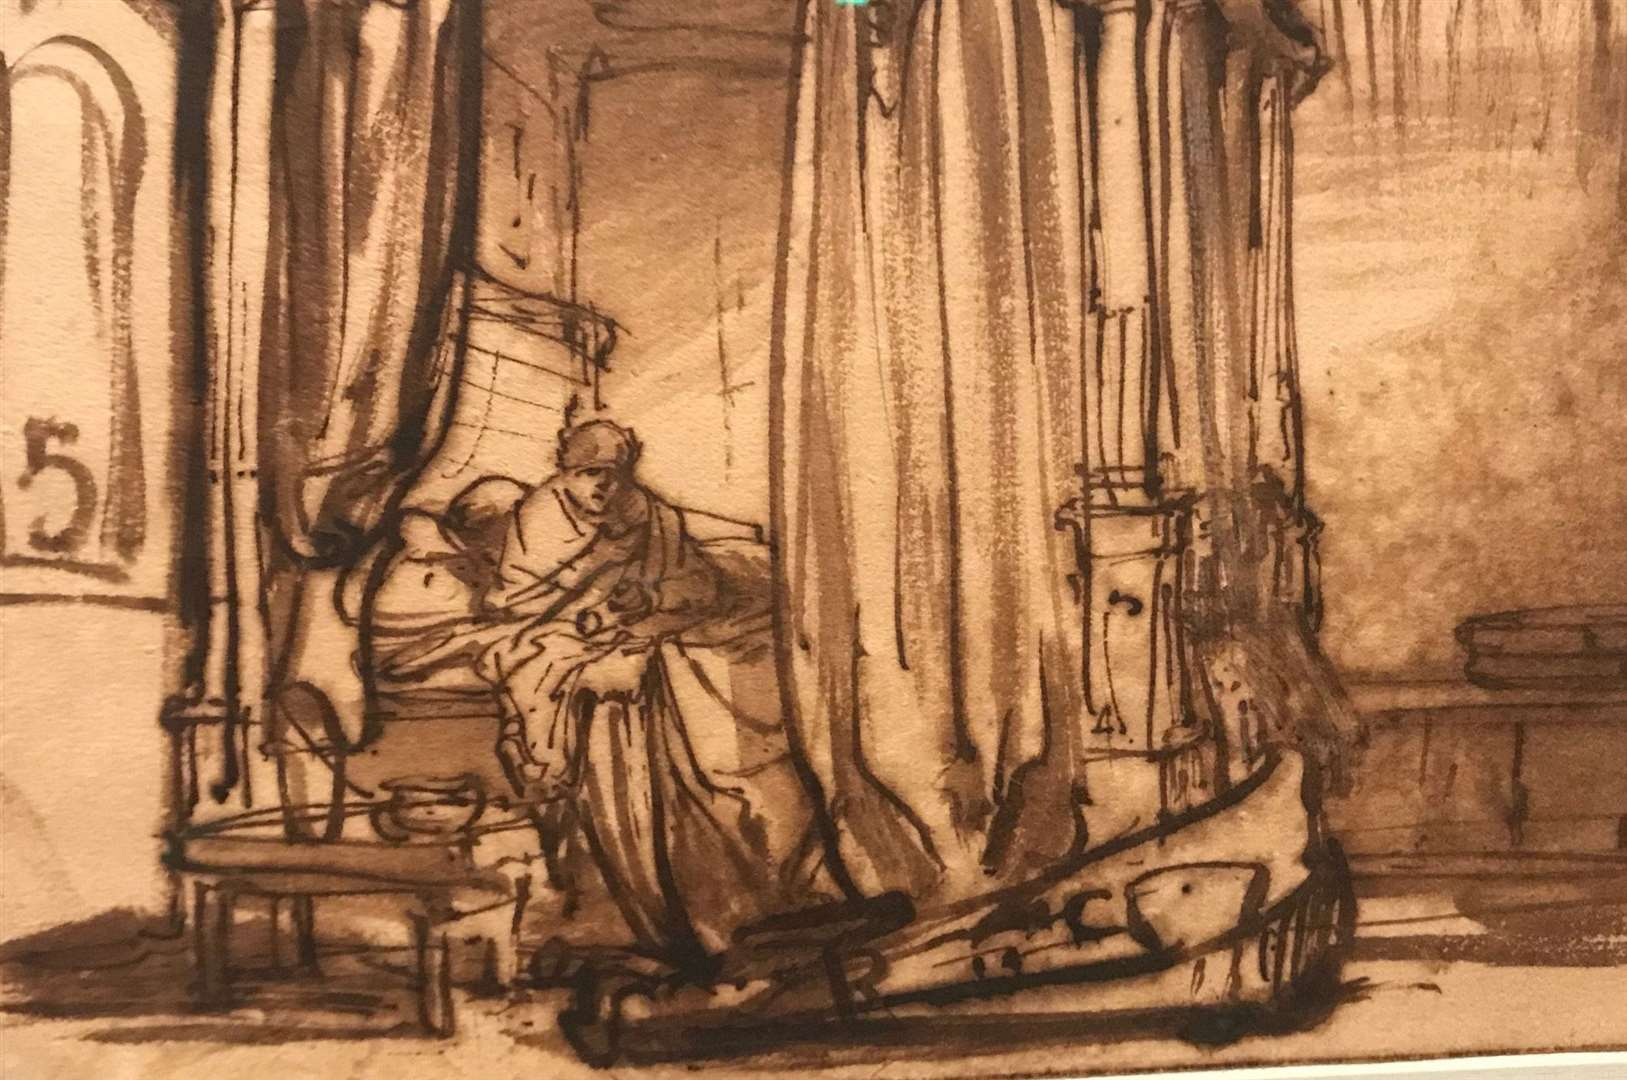 A rarely seen sketch by Rembrandt of his wife in their bedroom displayed at the All The Rembrandts Exhibition at the Rijksmuseum, Amsterdam. Picture: Gabrielle Fagan/Rijksmuseum/PA